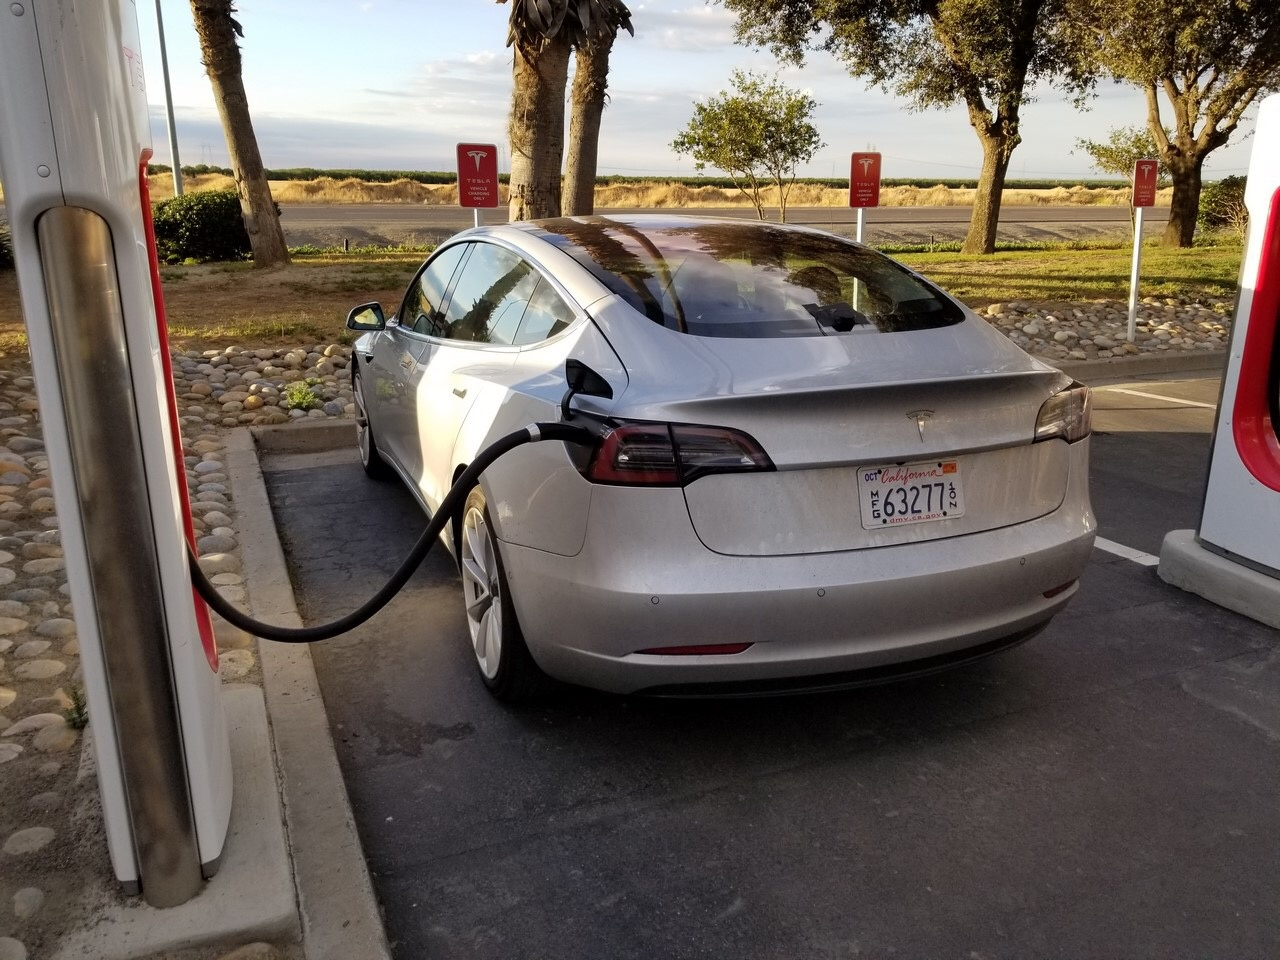 Where is the charging plug located in the Tesla Model 3? - Quora